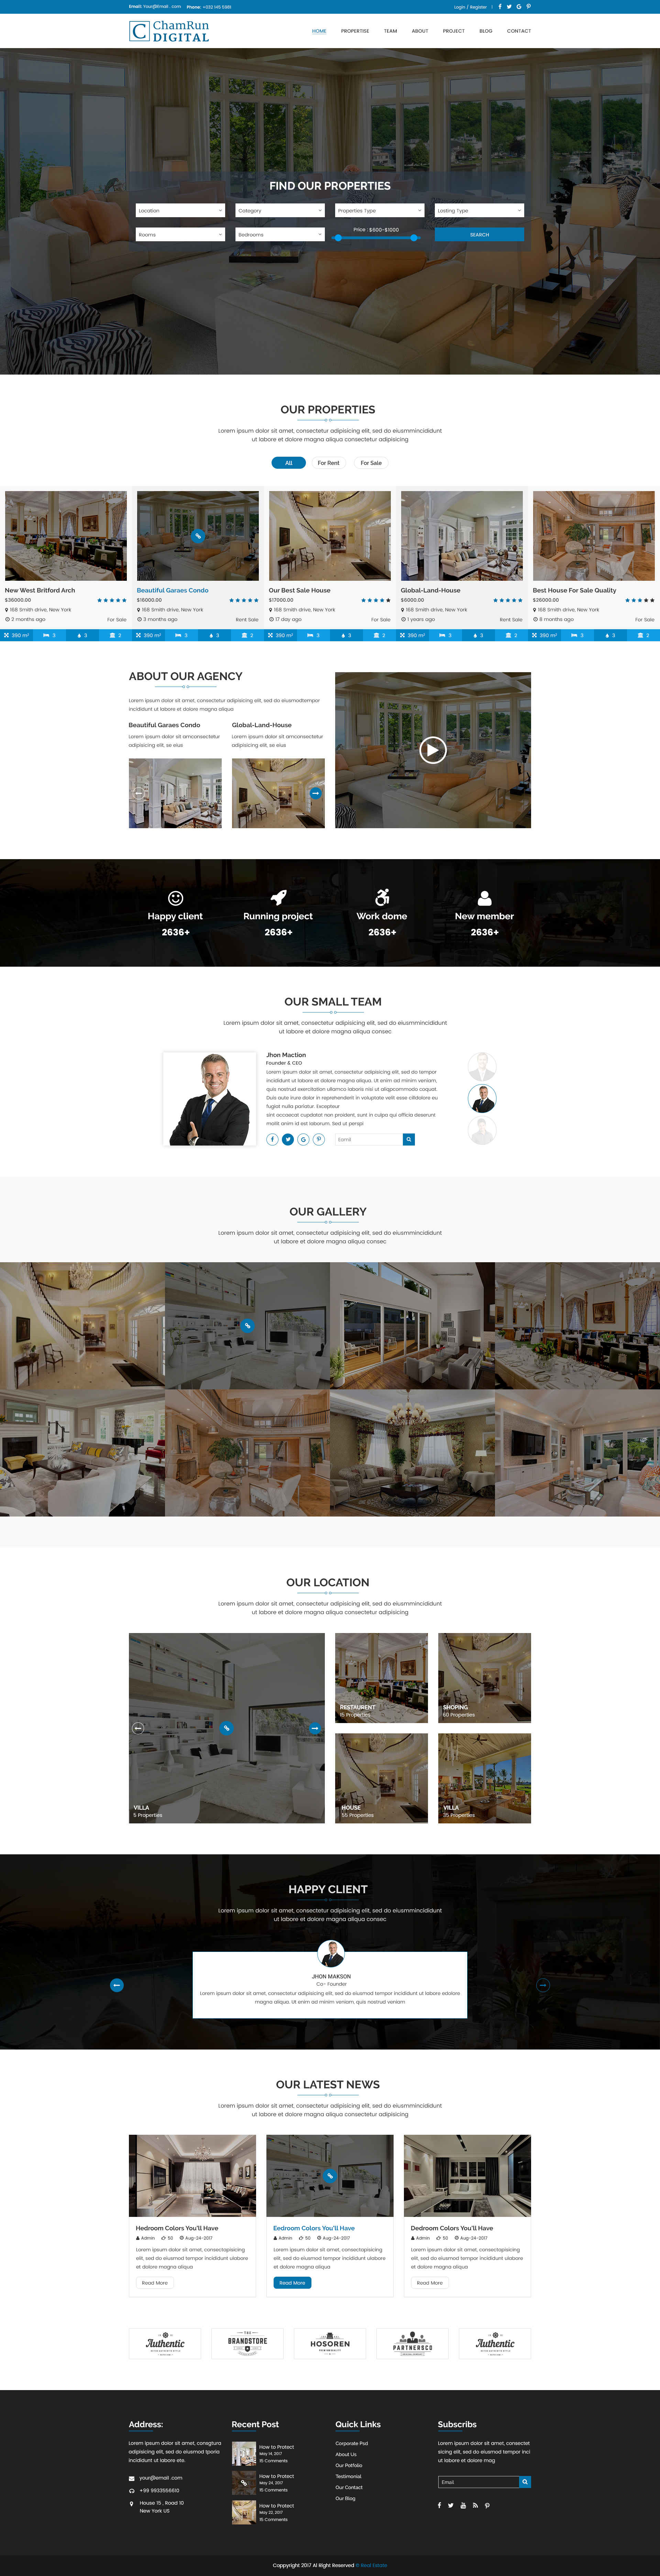 Chamwebdesign-realstate7